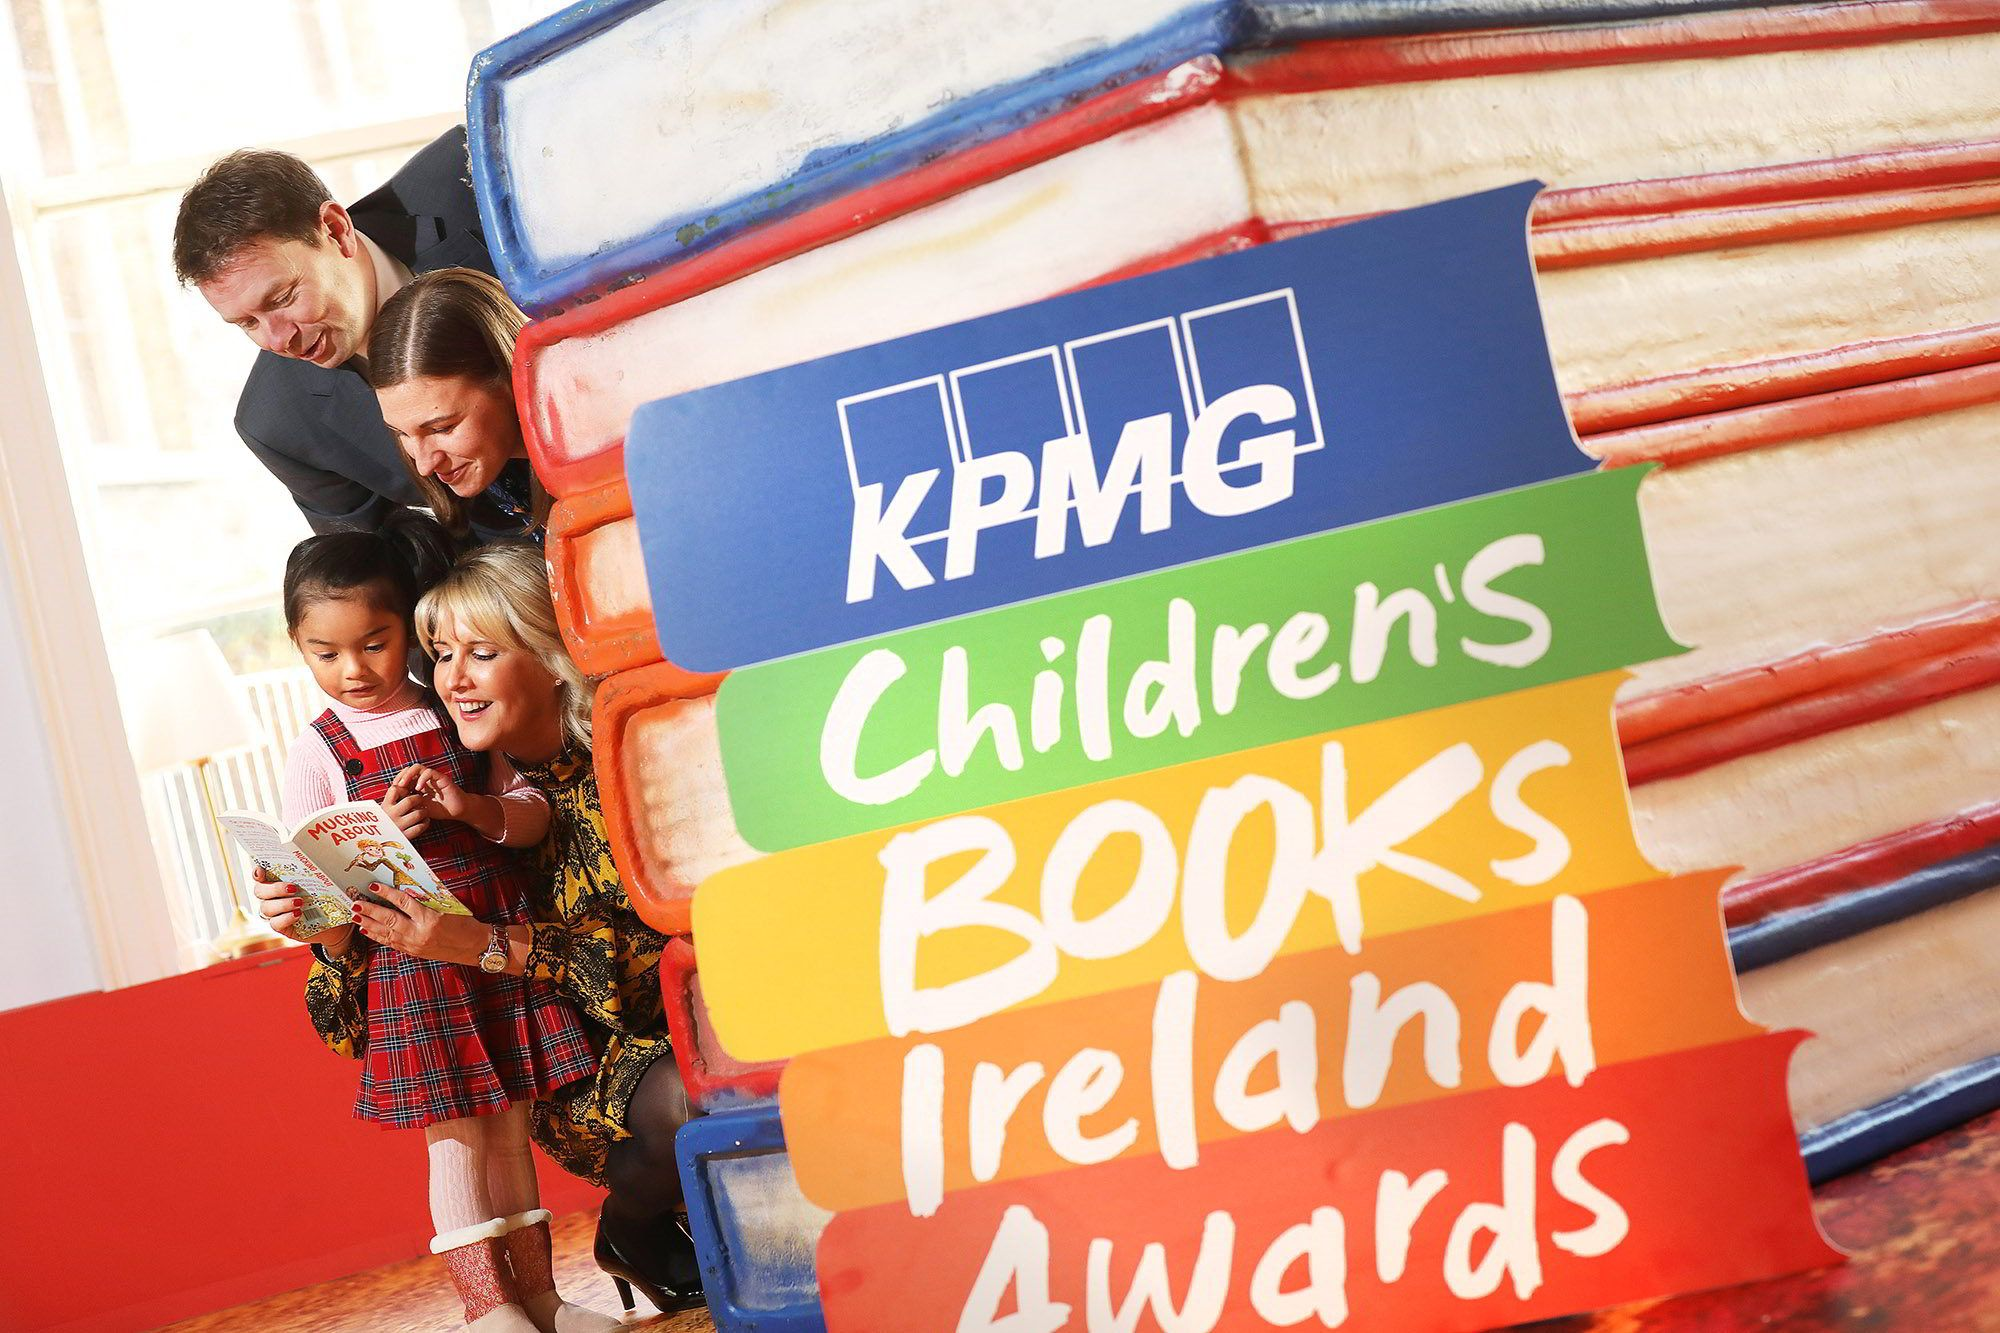 KPMG Children's Books Ireland Awards